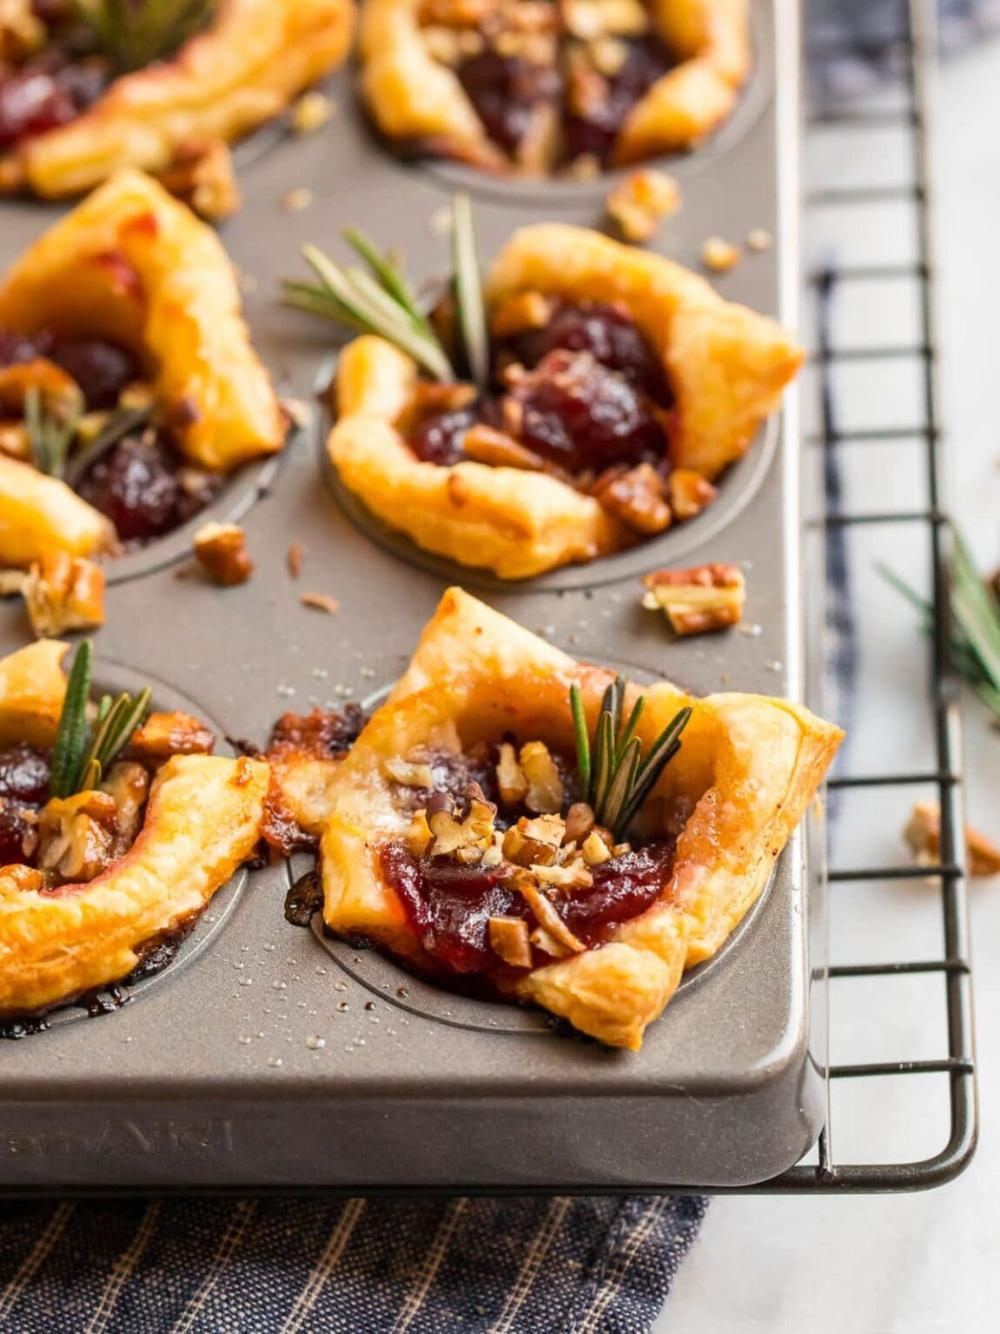 Cranberry brie bites with cranberry sauce and pecans thanksgiving hors d'oeuvres